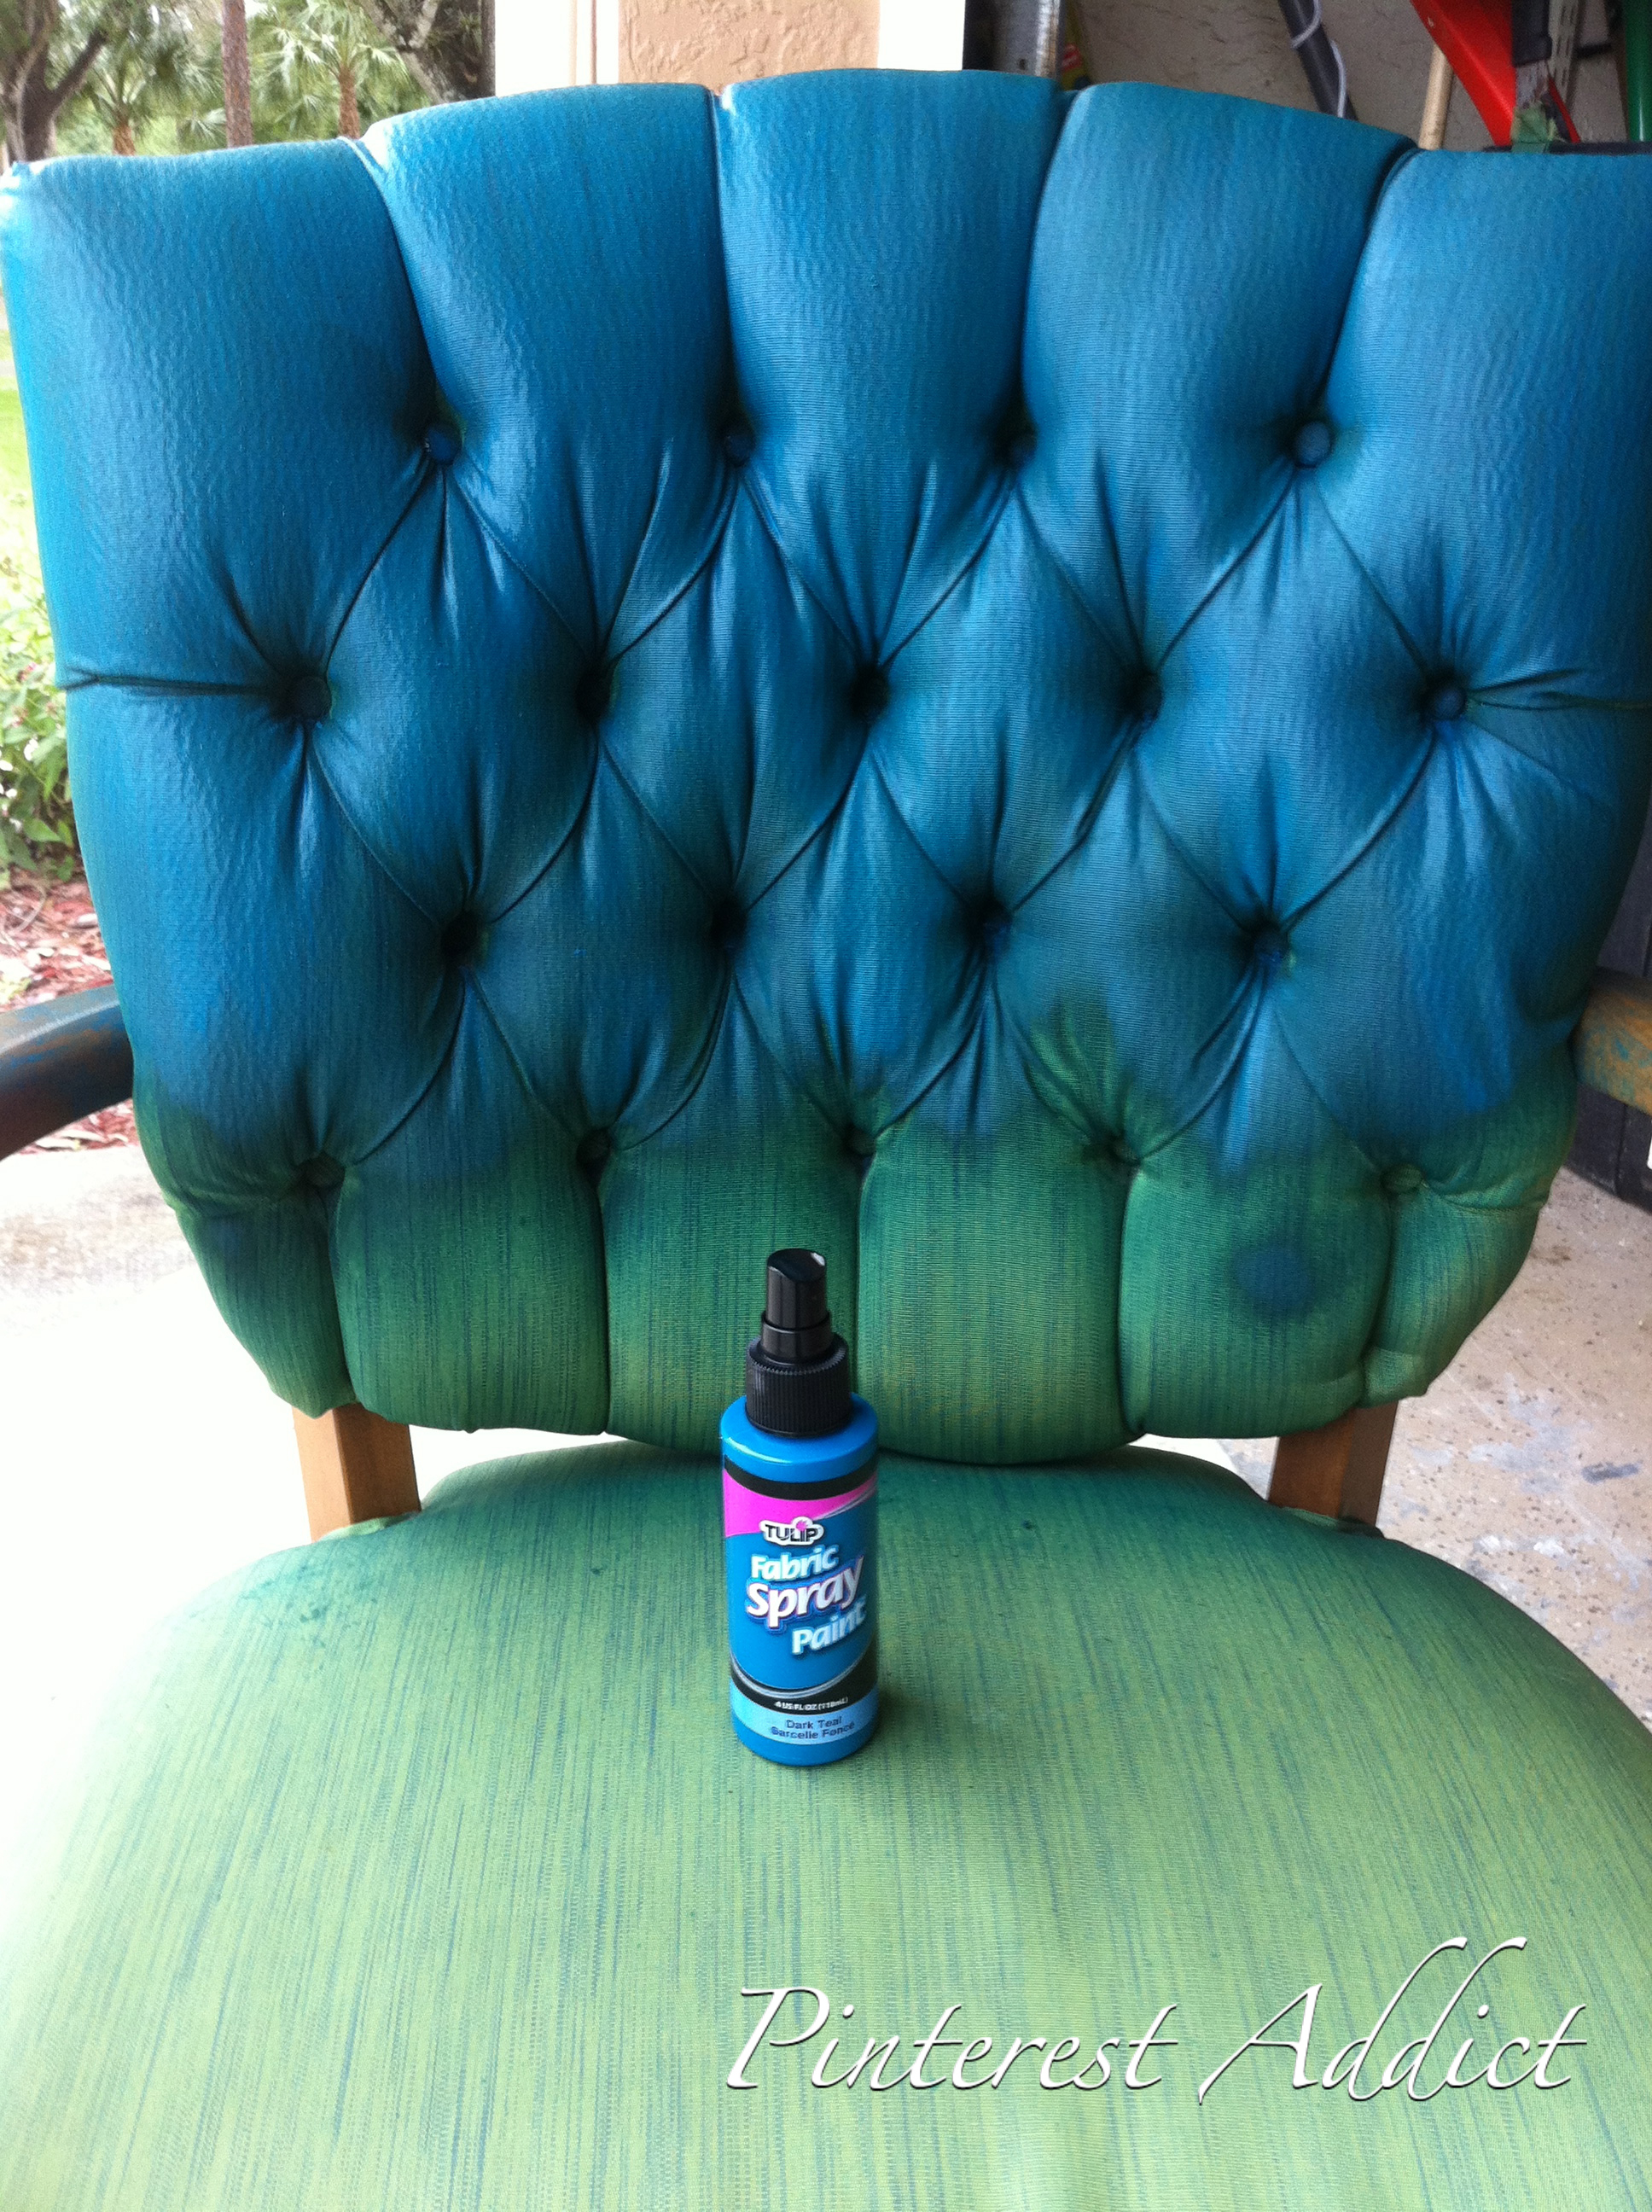 Fabric spray paint on green chair